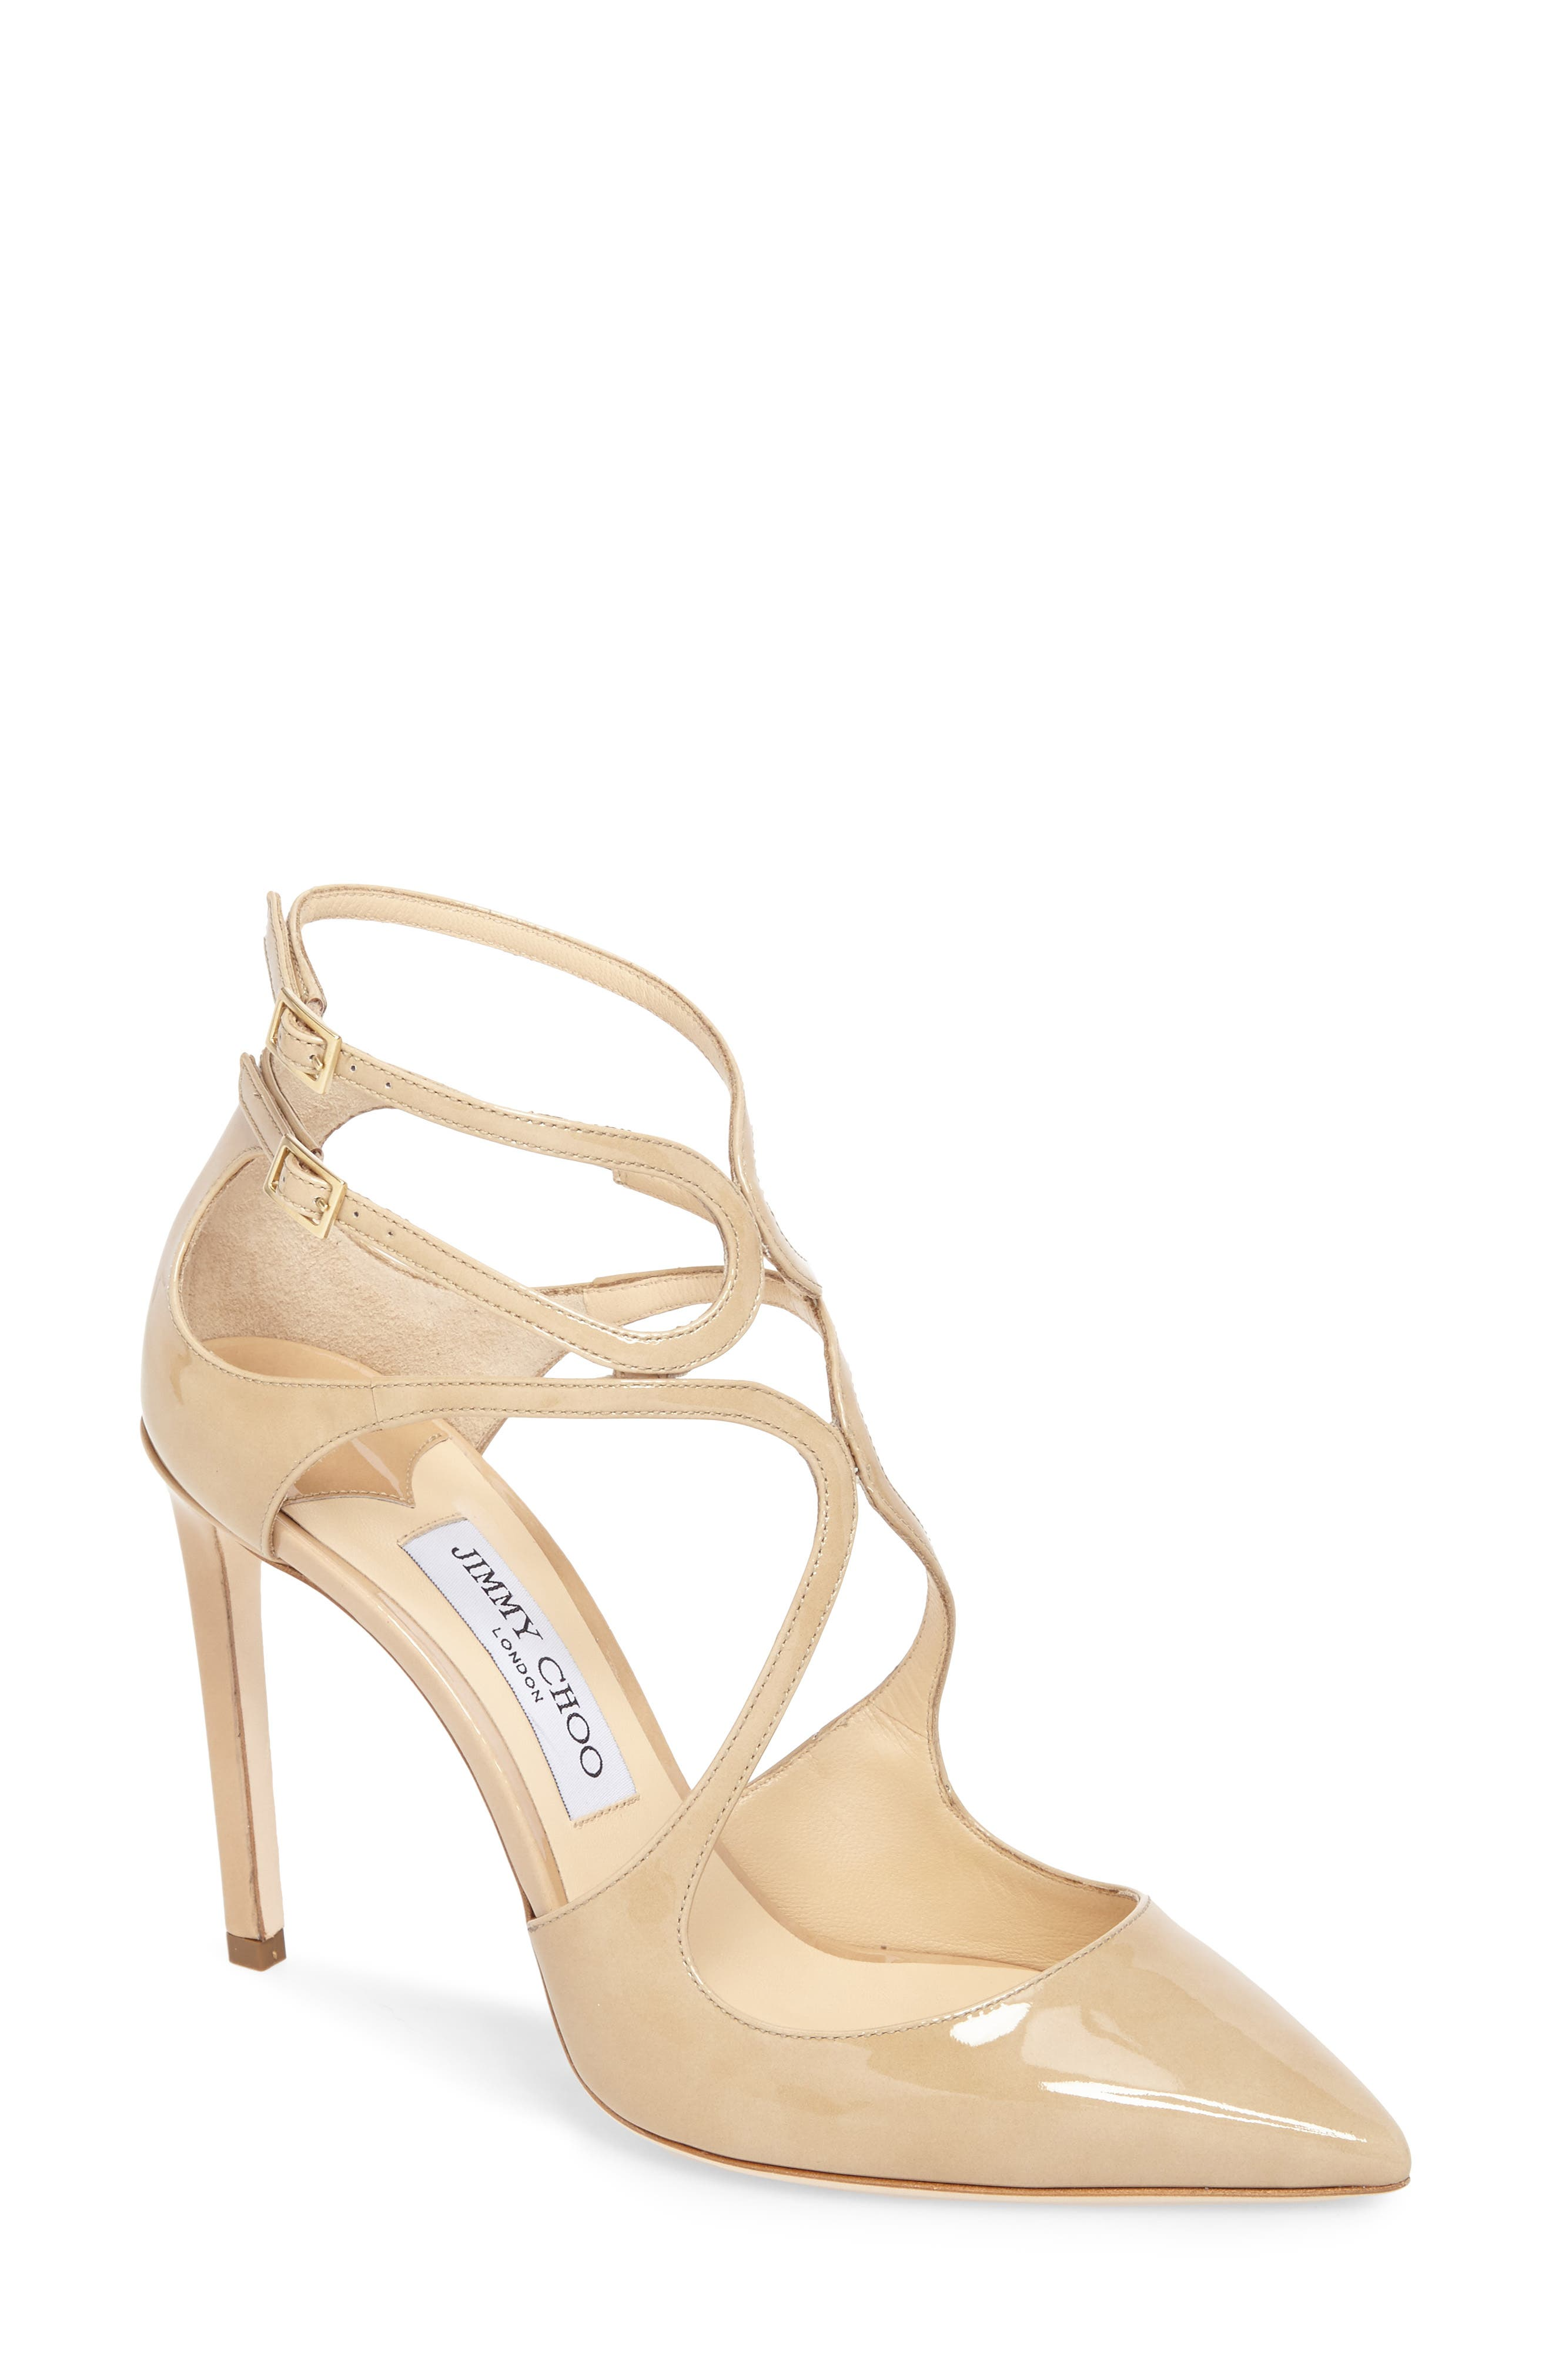 Lancer Strappy Pump,                         Main,                         color, NUDE PATENT